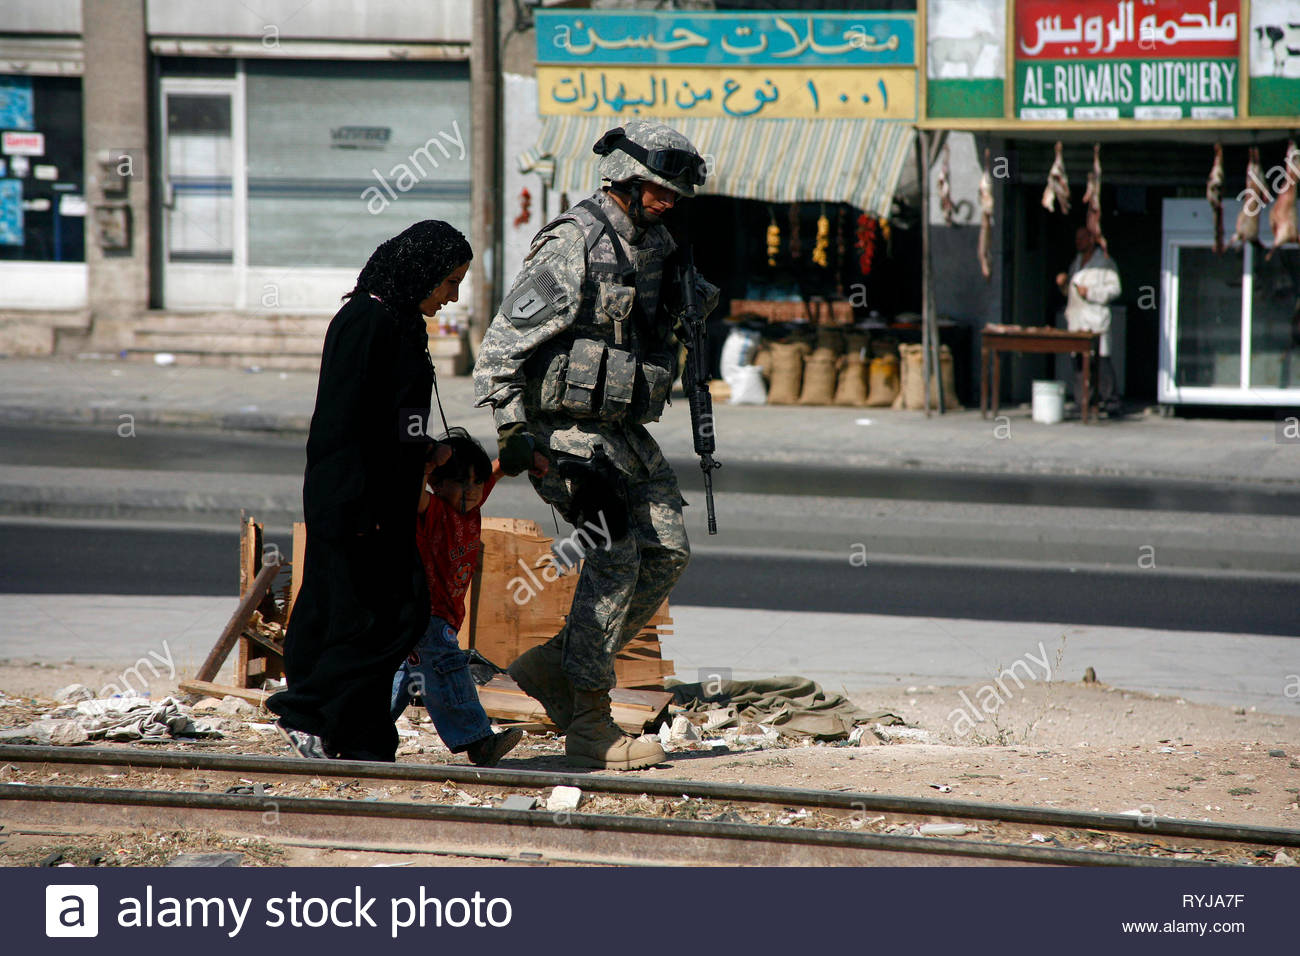 THE HURT LOCKER, SOLDIER WITH CIVILIAN CHILD , WOMAN, 2008 - Stock Image